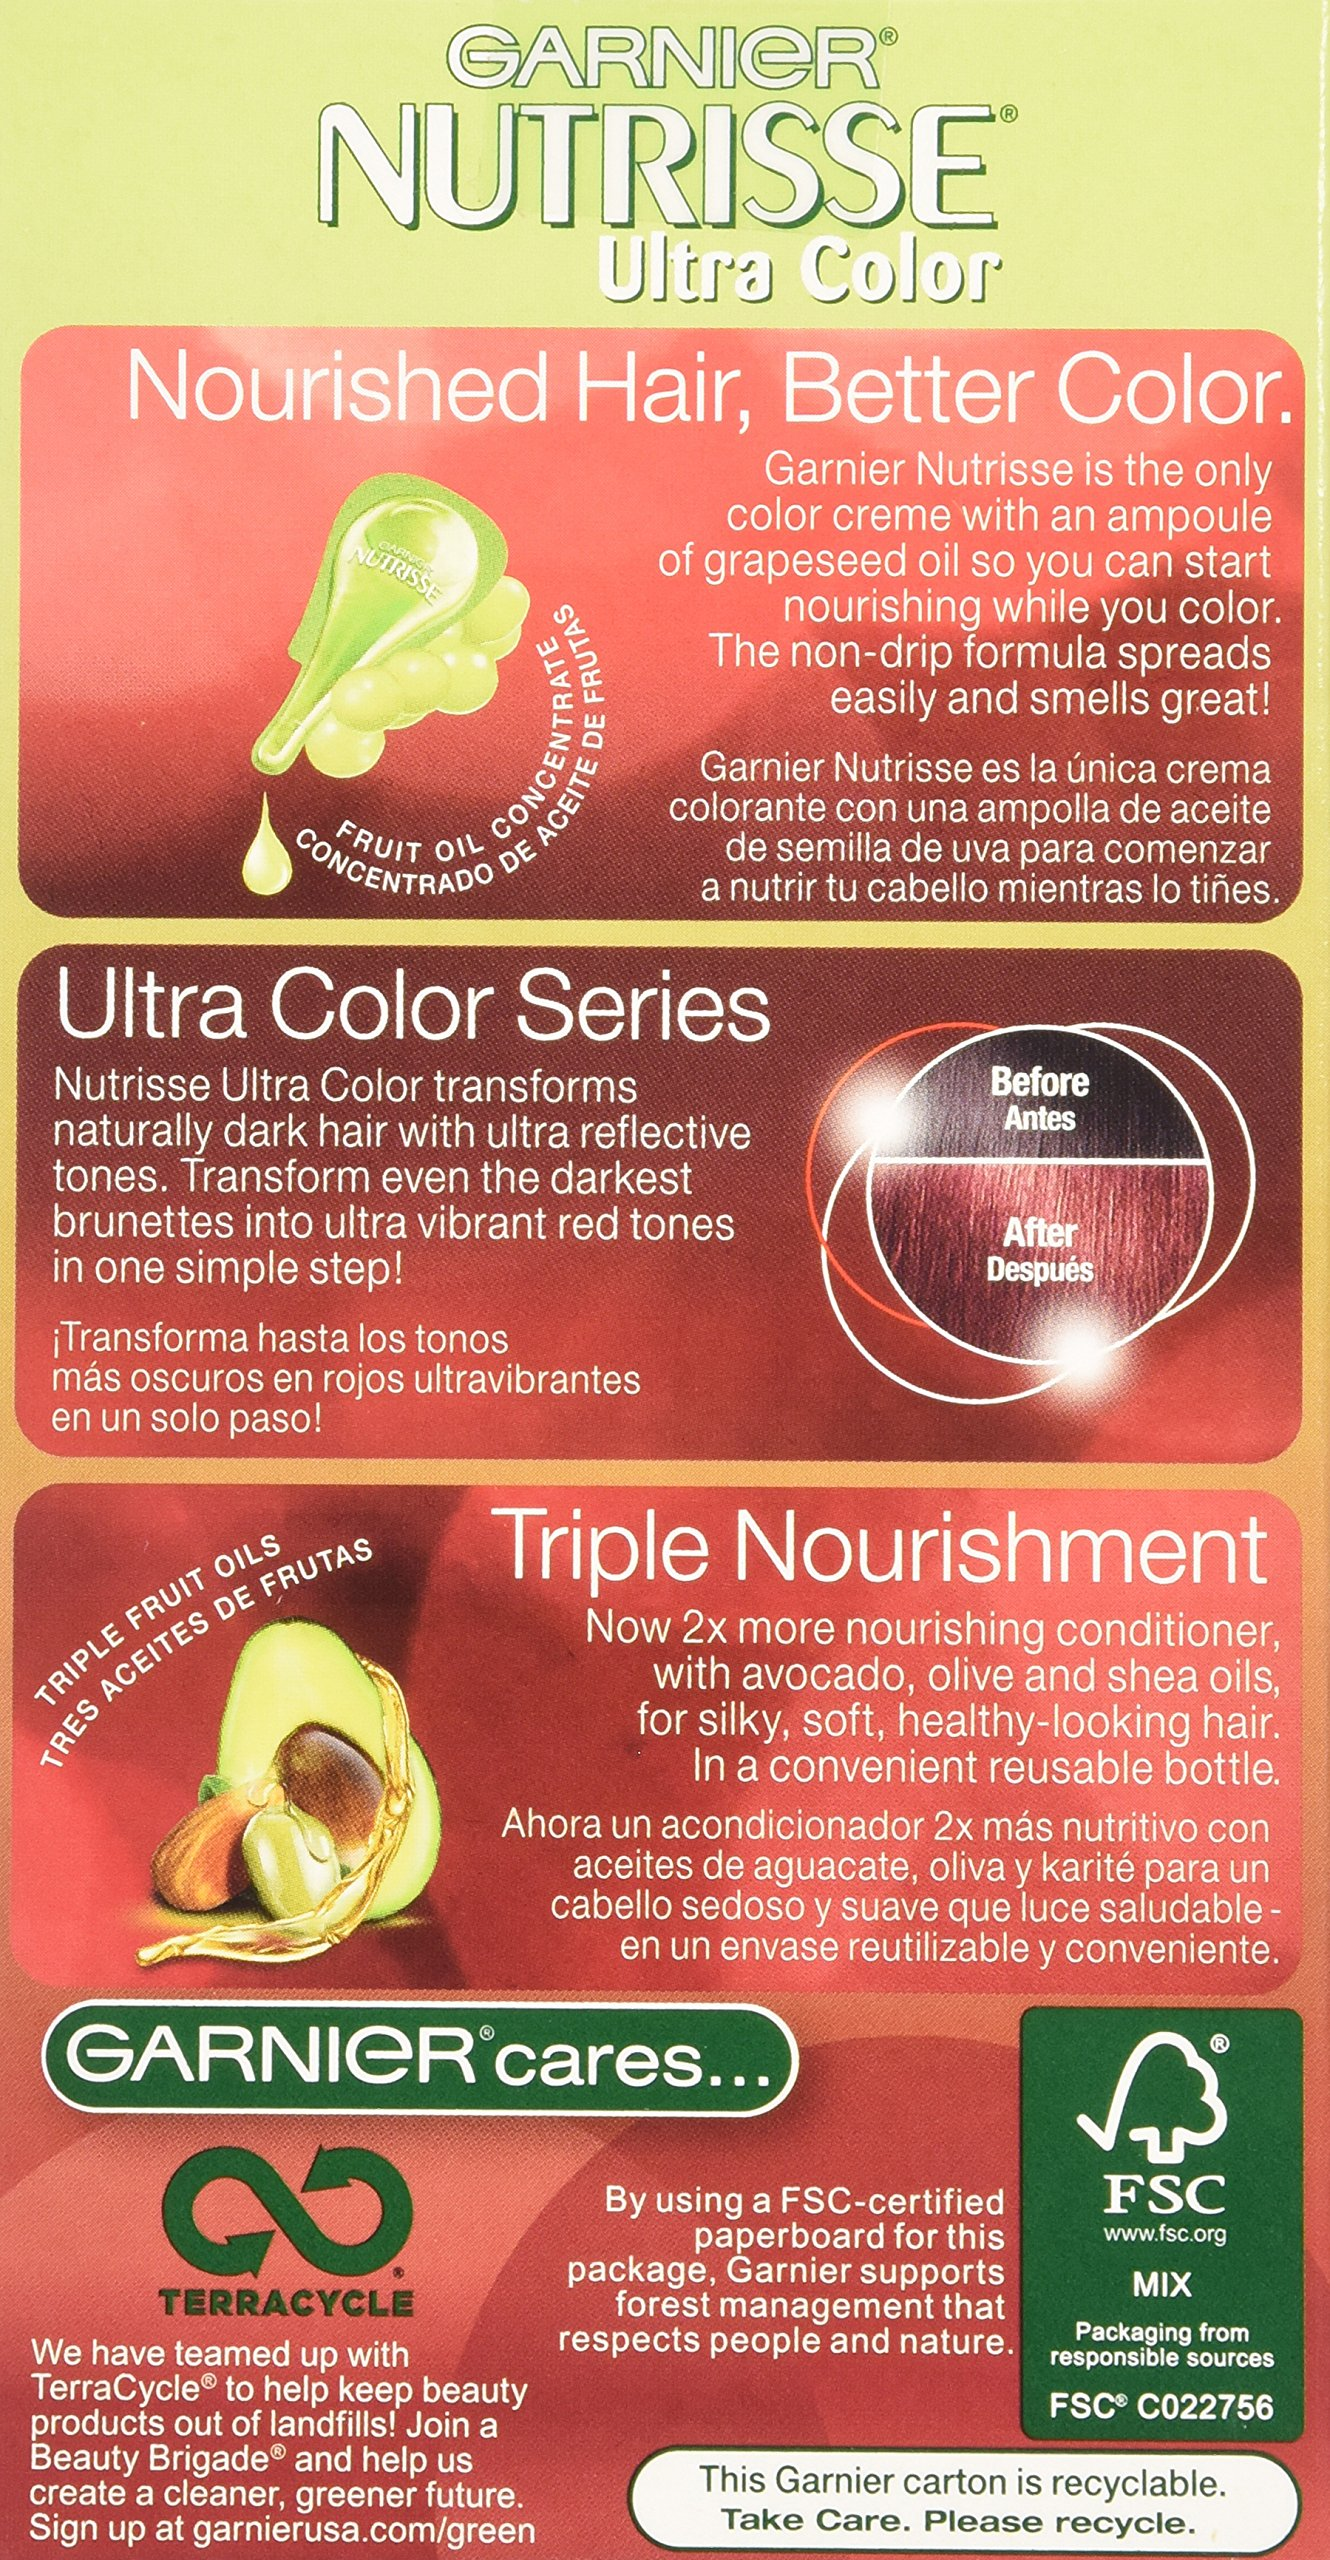 Garnier Nutrisse Ultra Color Nourishing Hair Color Creme, Light Intense Auburn, 3 Count  (Packaging May Vary) by Garnier (Image #4)